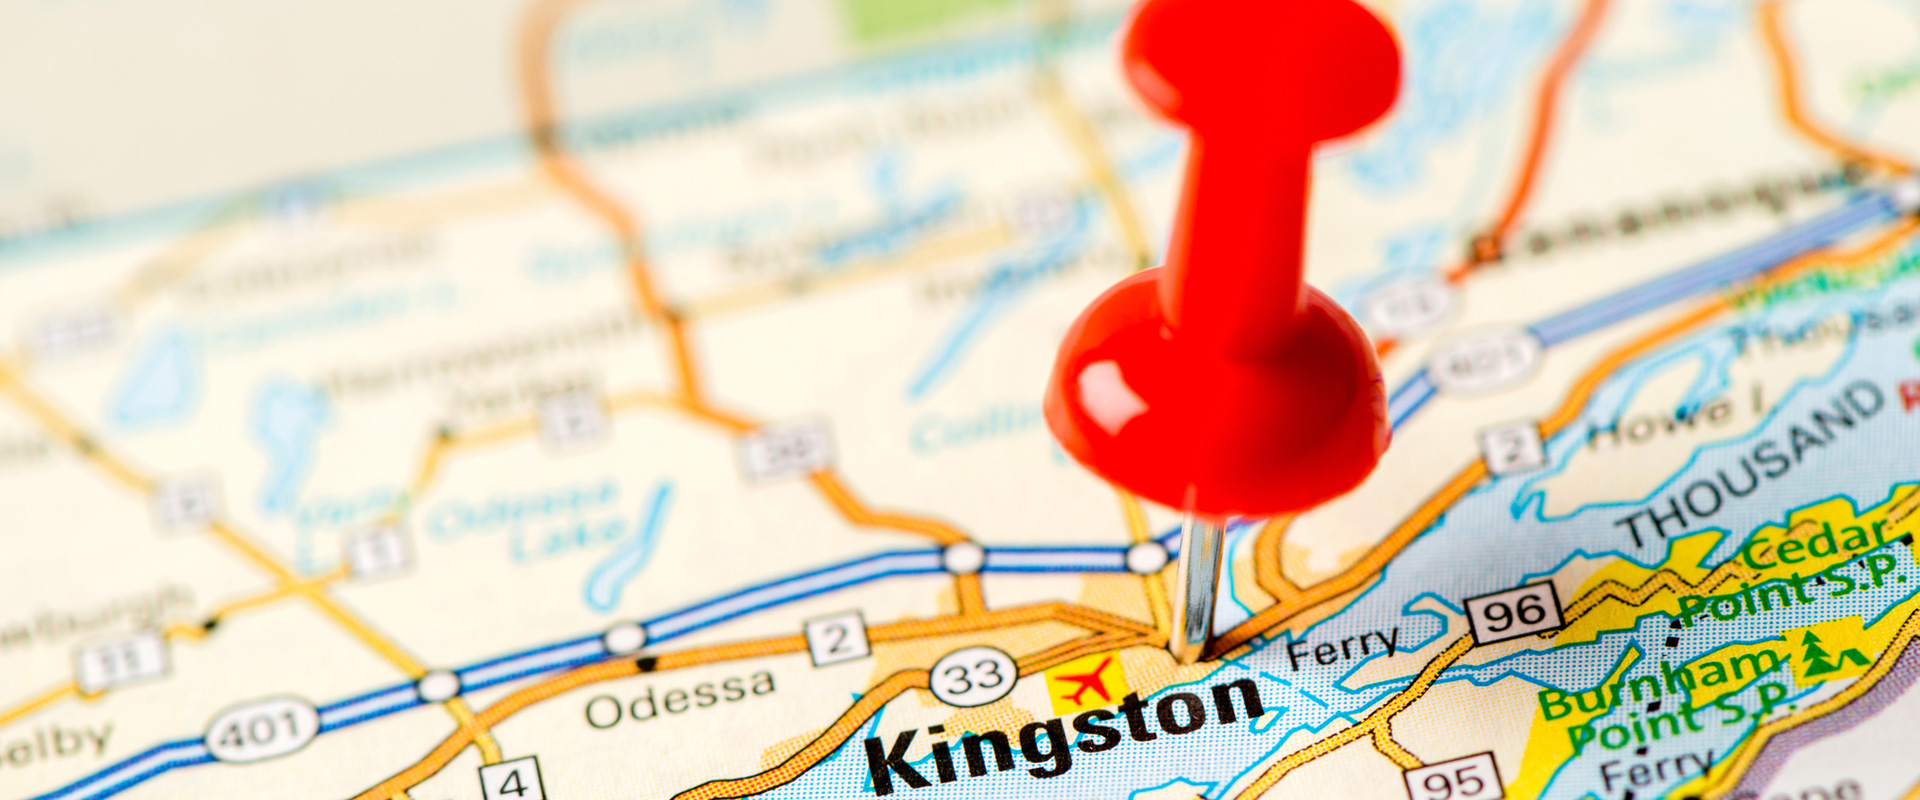 Map of Kingston Ontario Canada